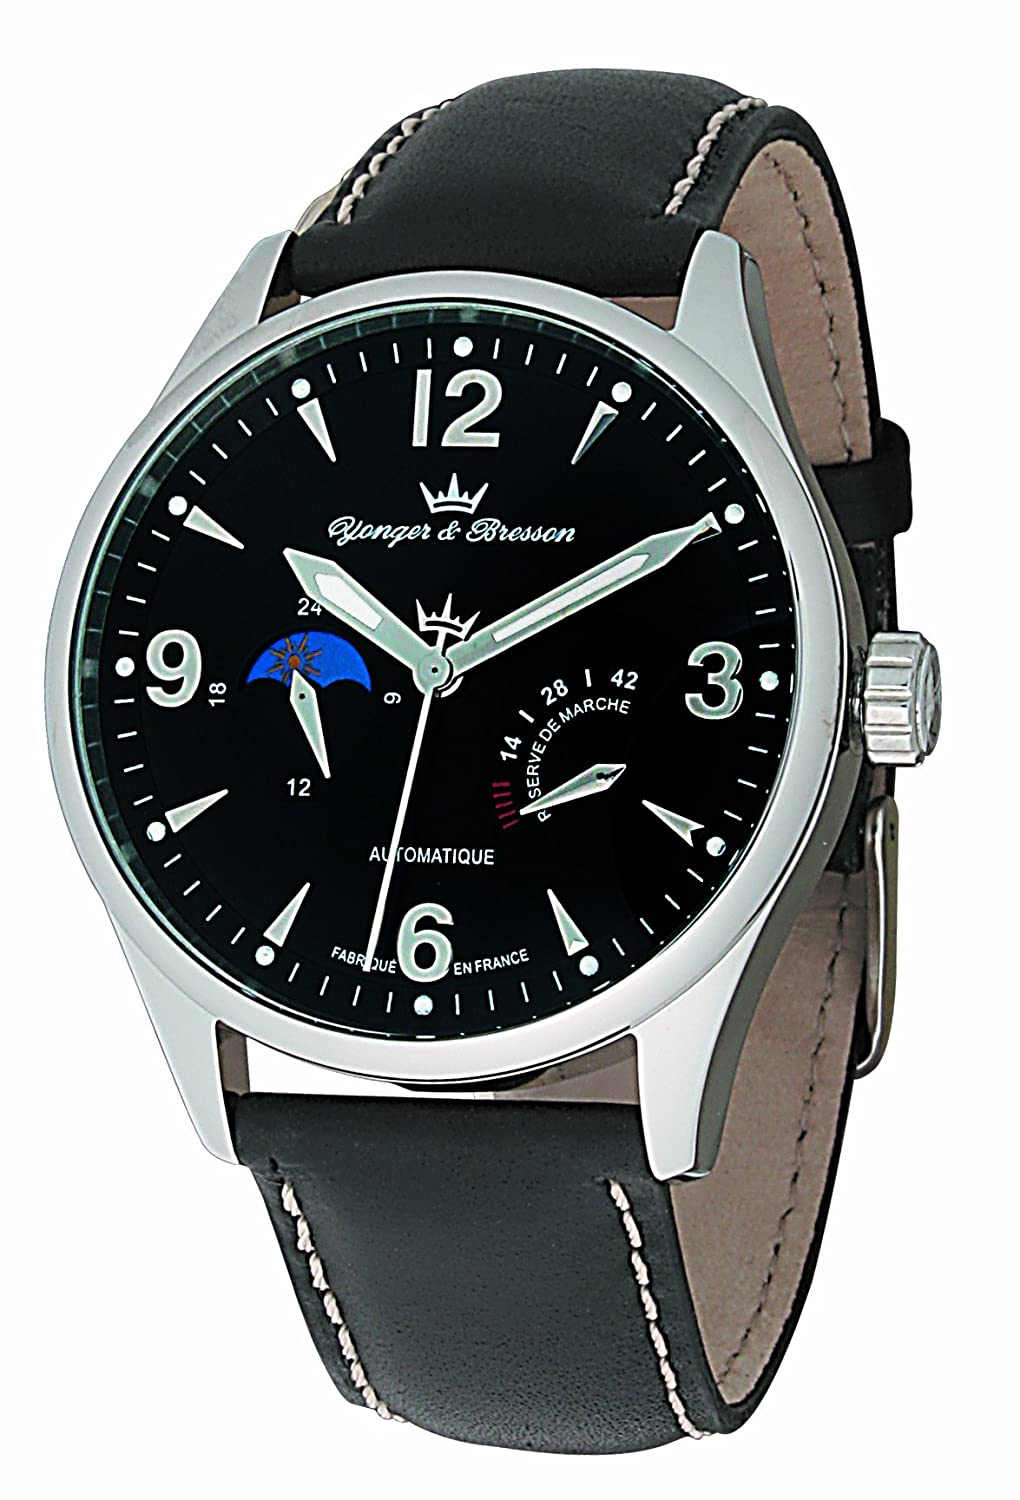 Yonger & Bresson Men 's YBH 8317 – 01ブラックダイヤルPVD Steel Automatic Rubber Watch。 B004080TKE